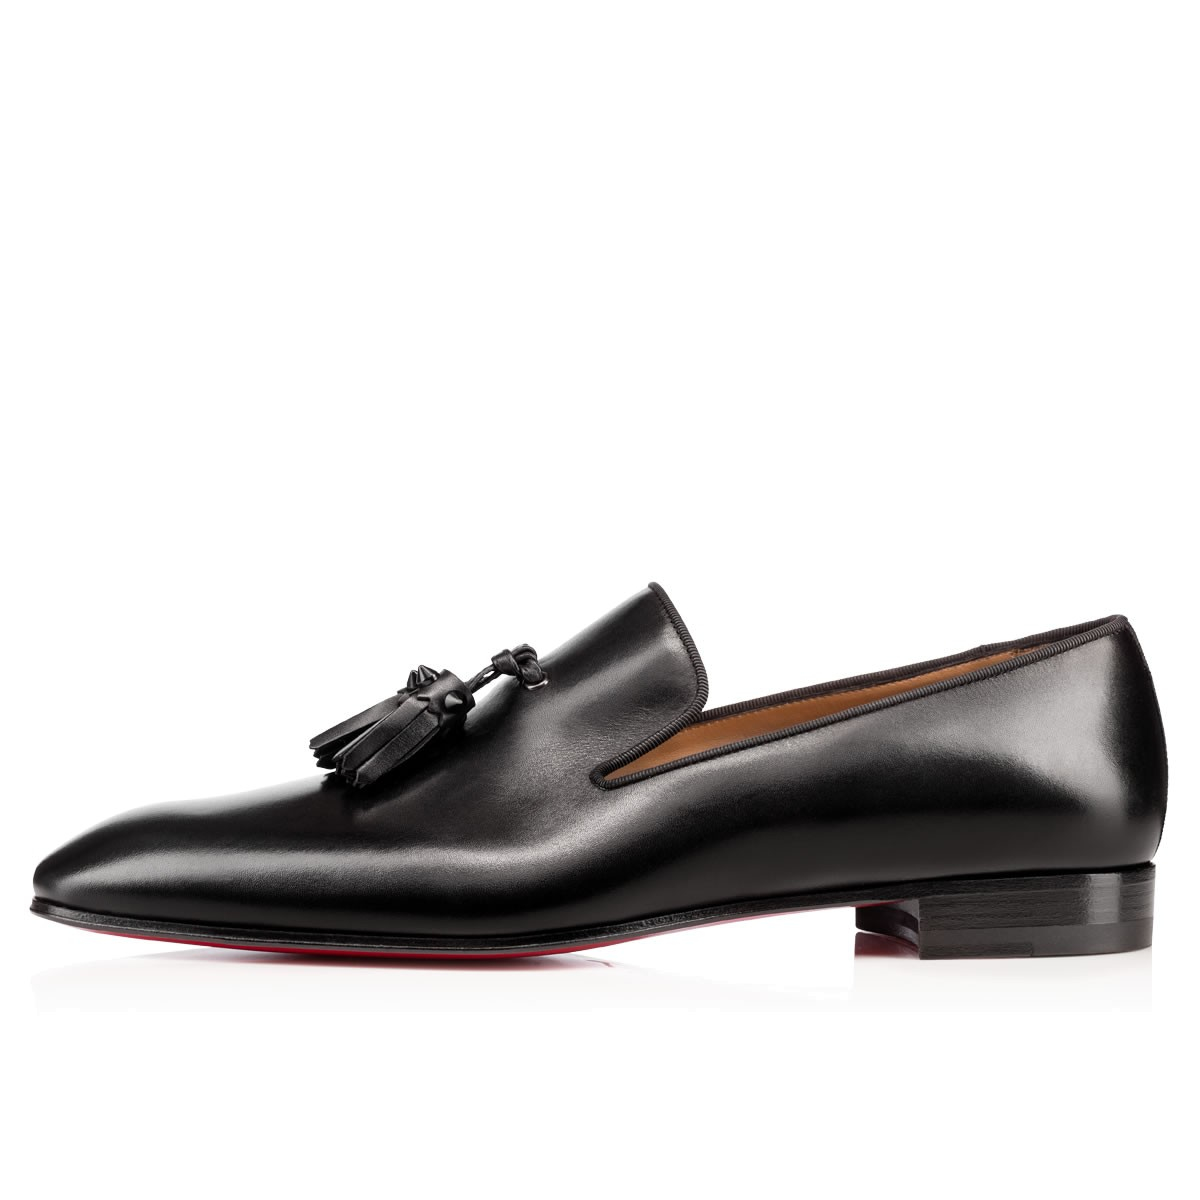 chris louboutin website - Christian louboutin Dandelion Tassel Flat Leather Shoes in Black ...